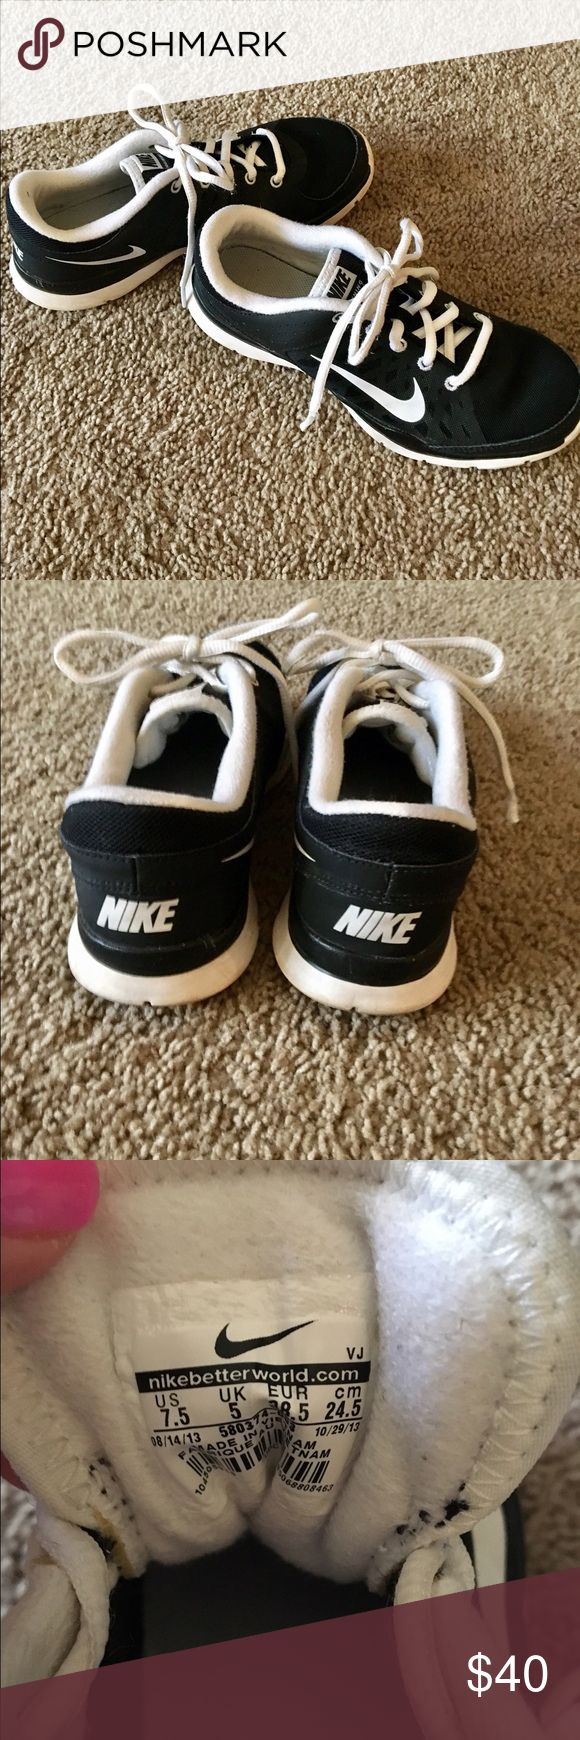 Size 7.5 Nike Training Shoes Black and white Nike training shoes. Some light wear, but have been used around 10 times, tops. Nike Shoes Athletic Shoes